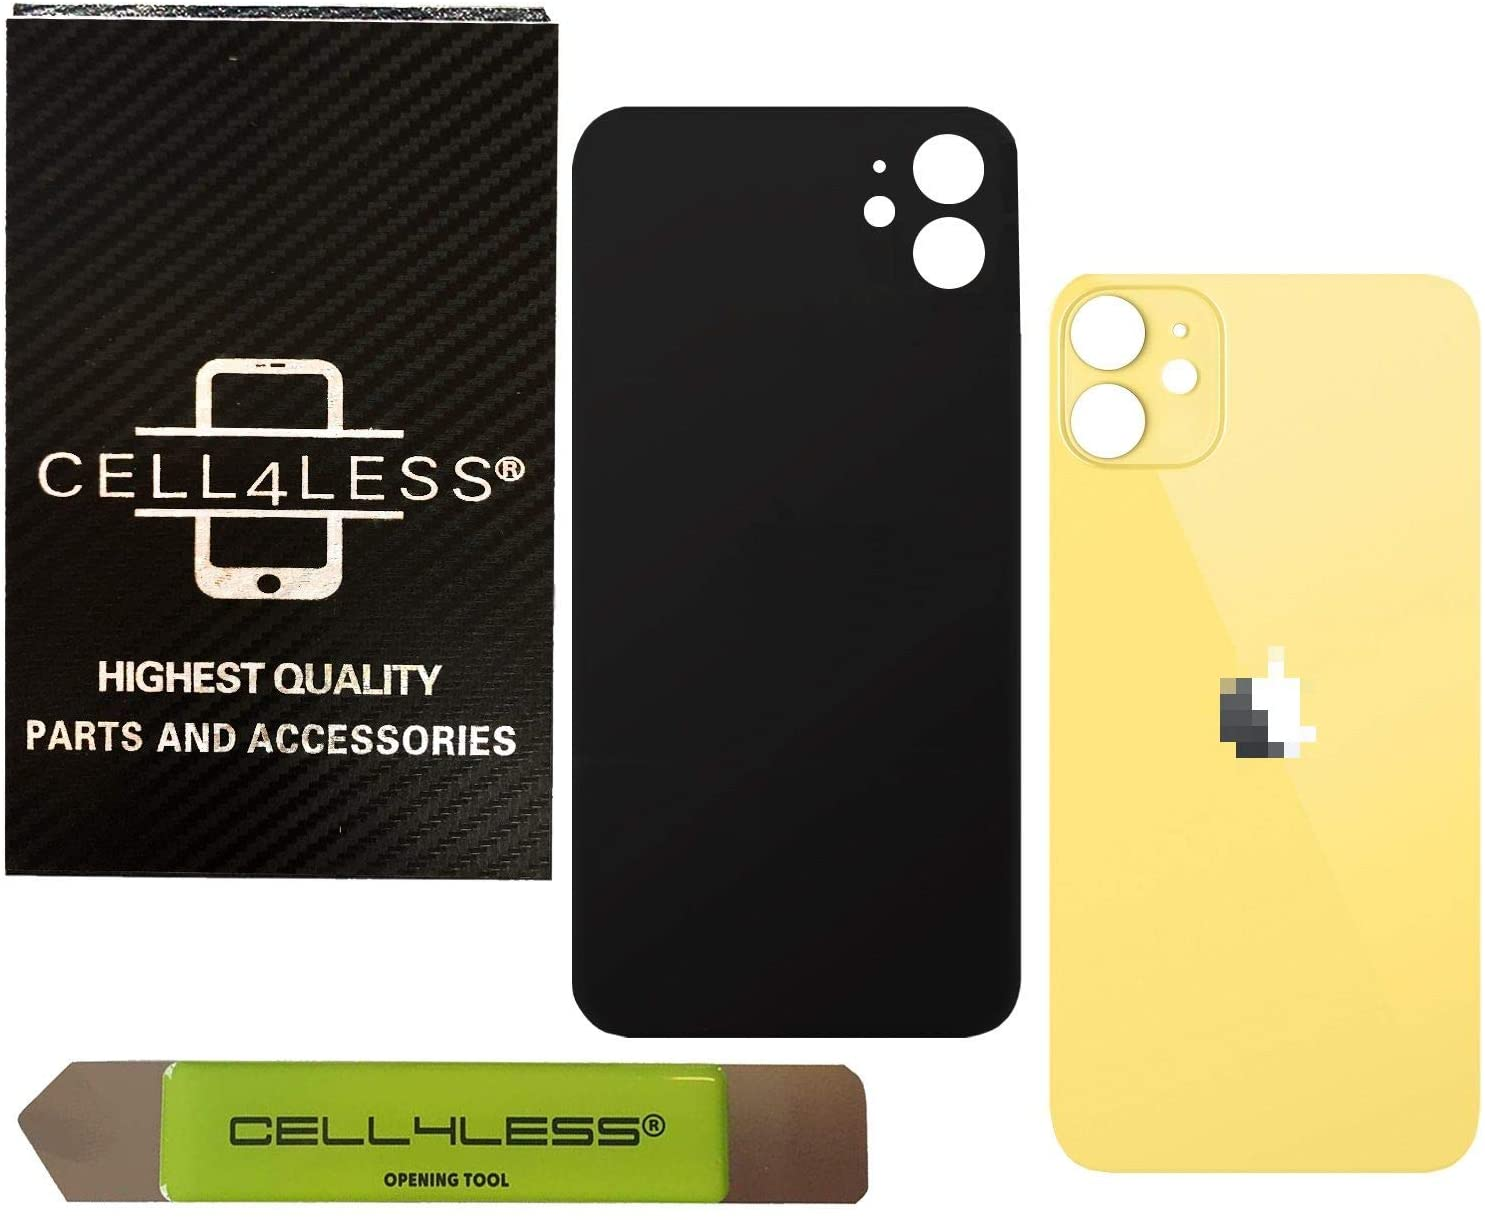 Cell4less Back Glass Replacement Kit for The iPhone 11 ~ Rear Back Glass w/Removal Tool (Yellow)